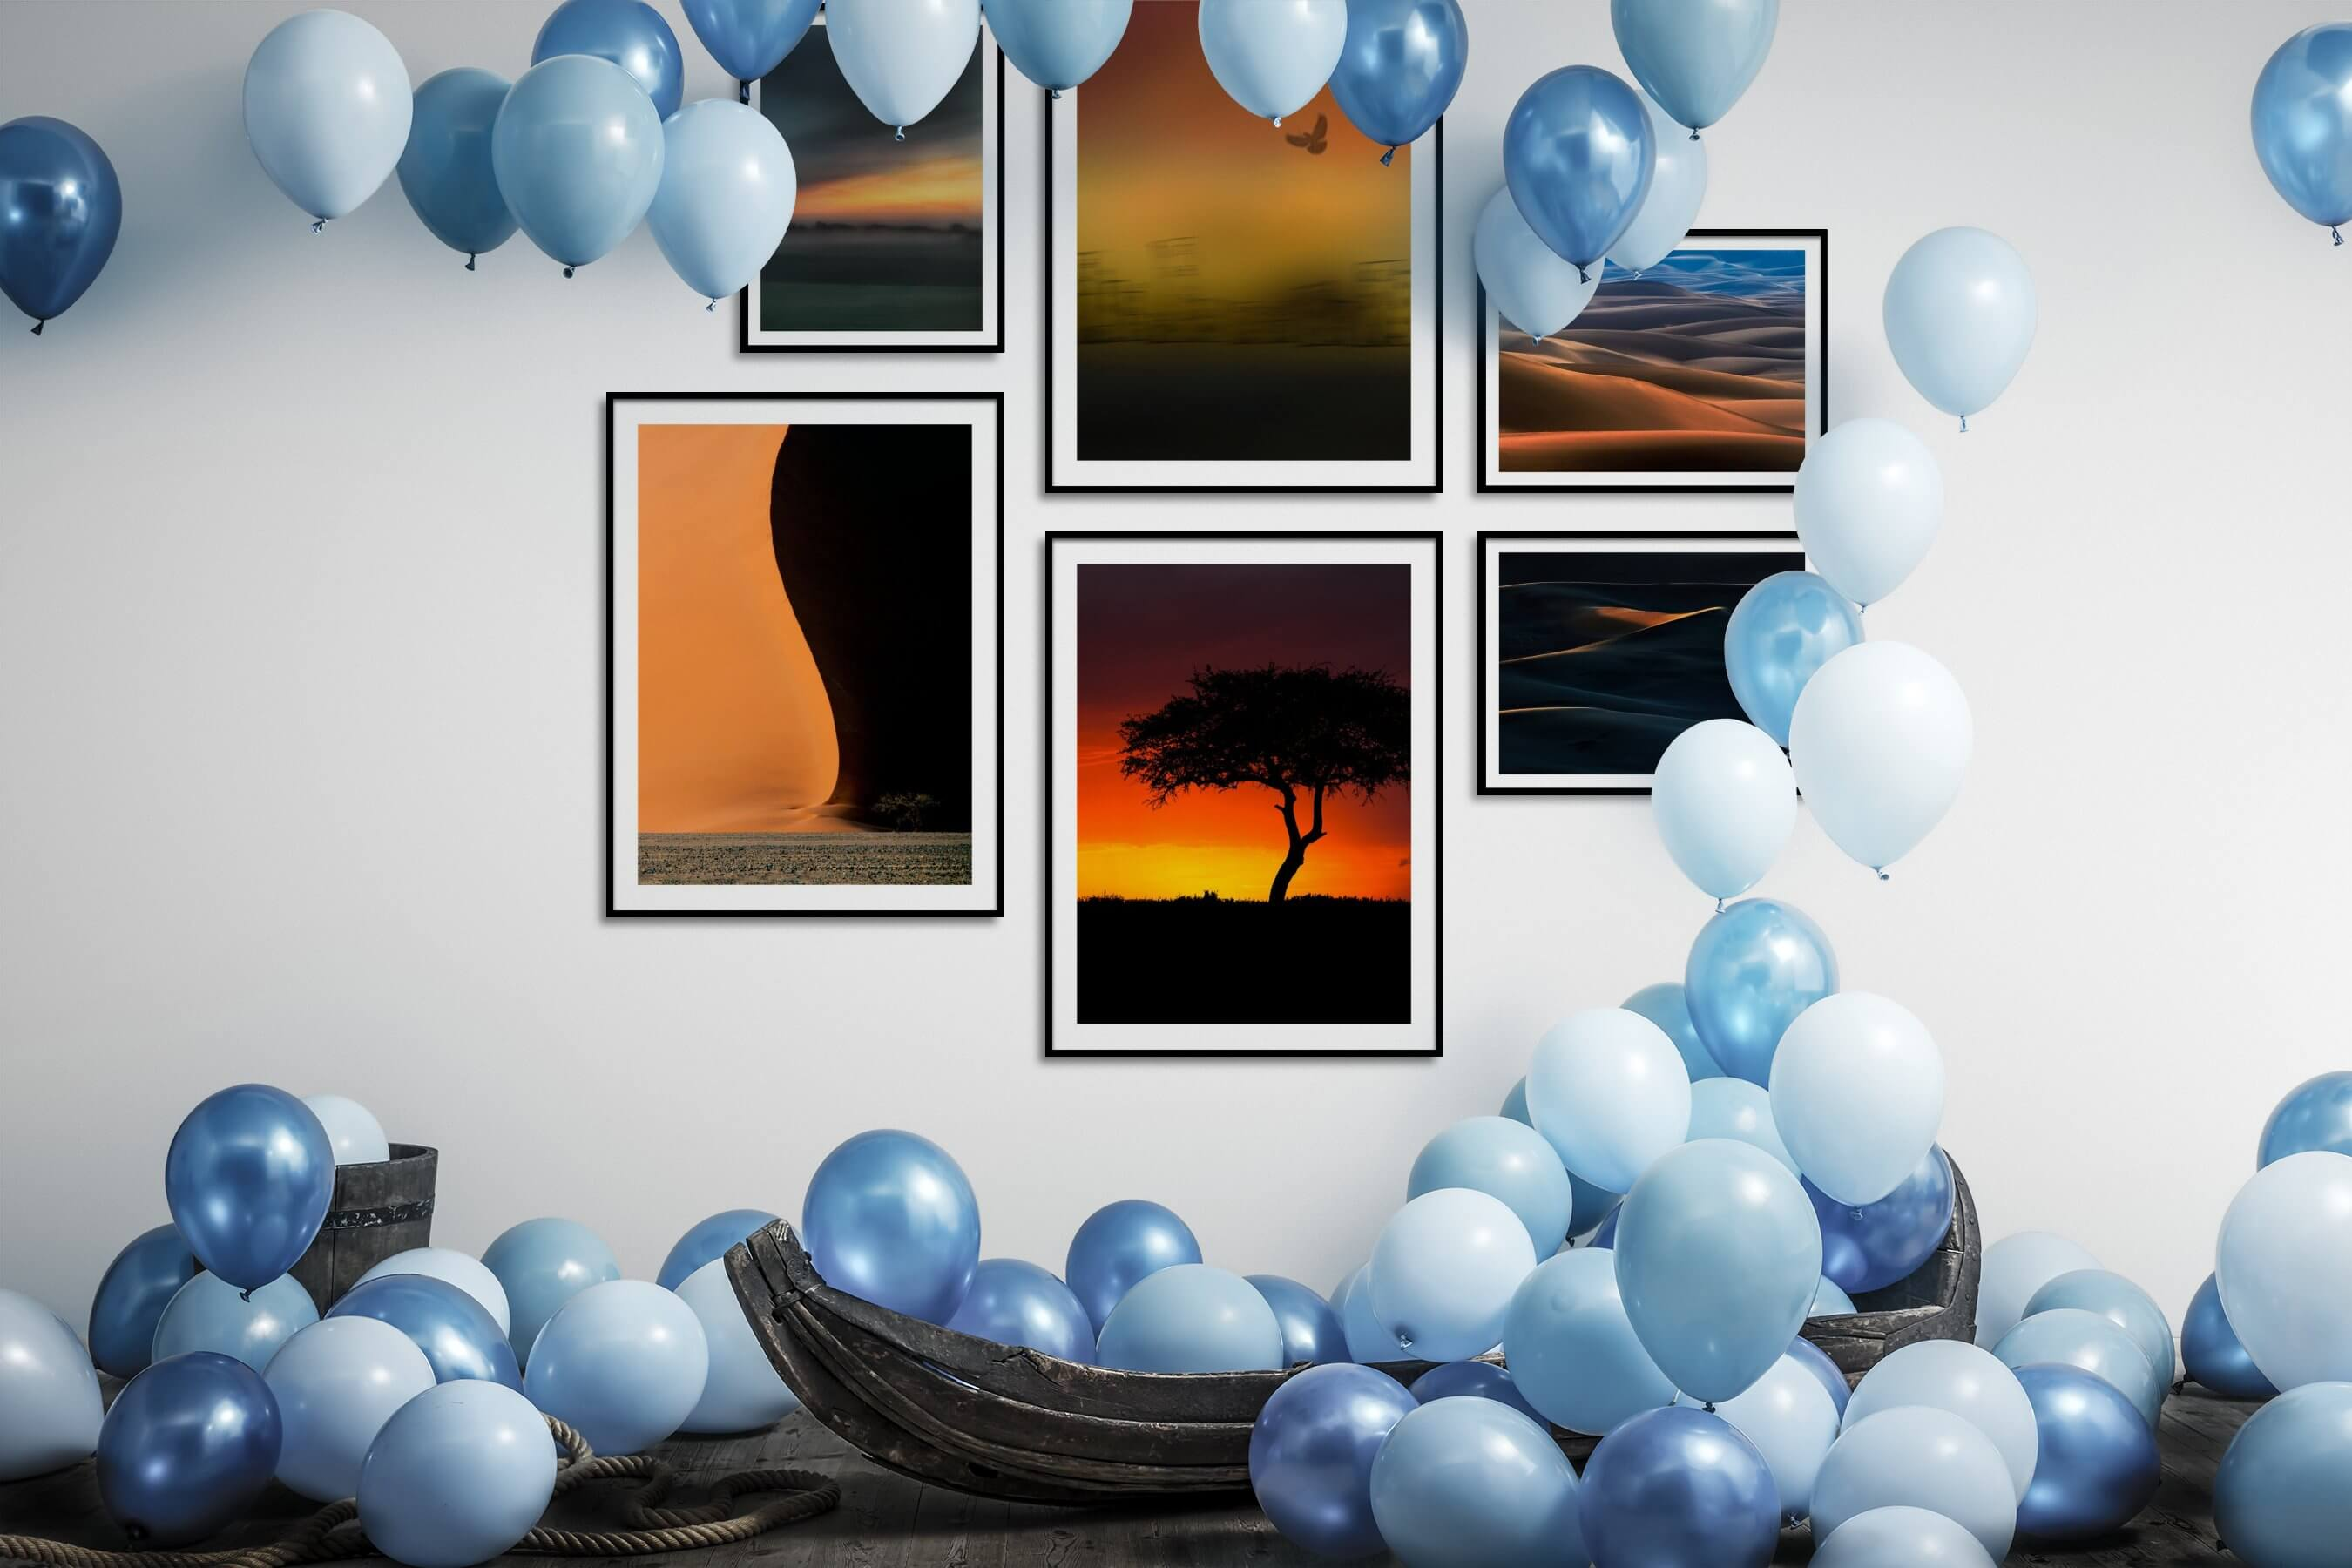 Gallery wall idea with six framed pictures arranged on a wall depicting For the Moderate, Country Life, City Life, For the Minimalist, and Nature